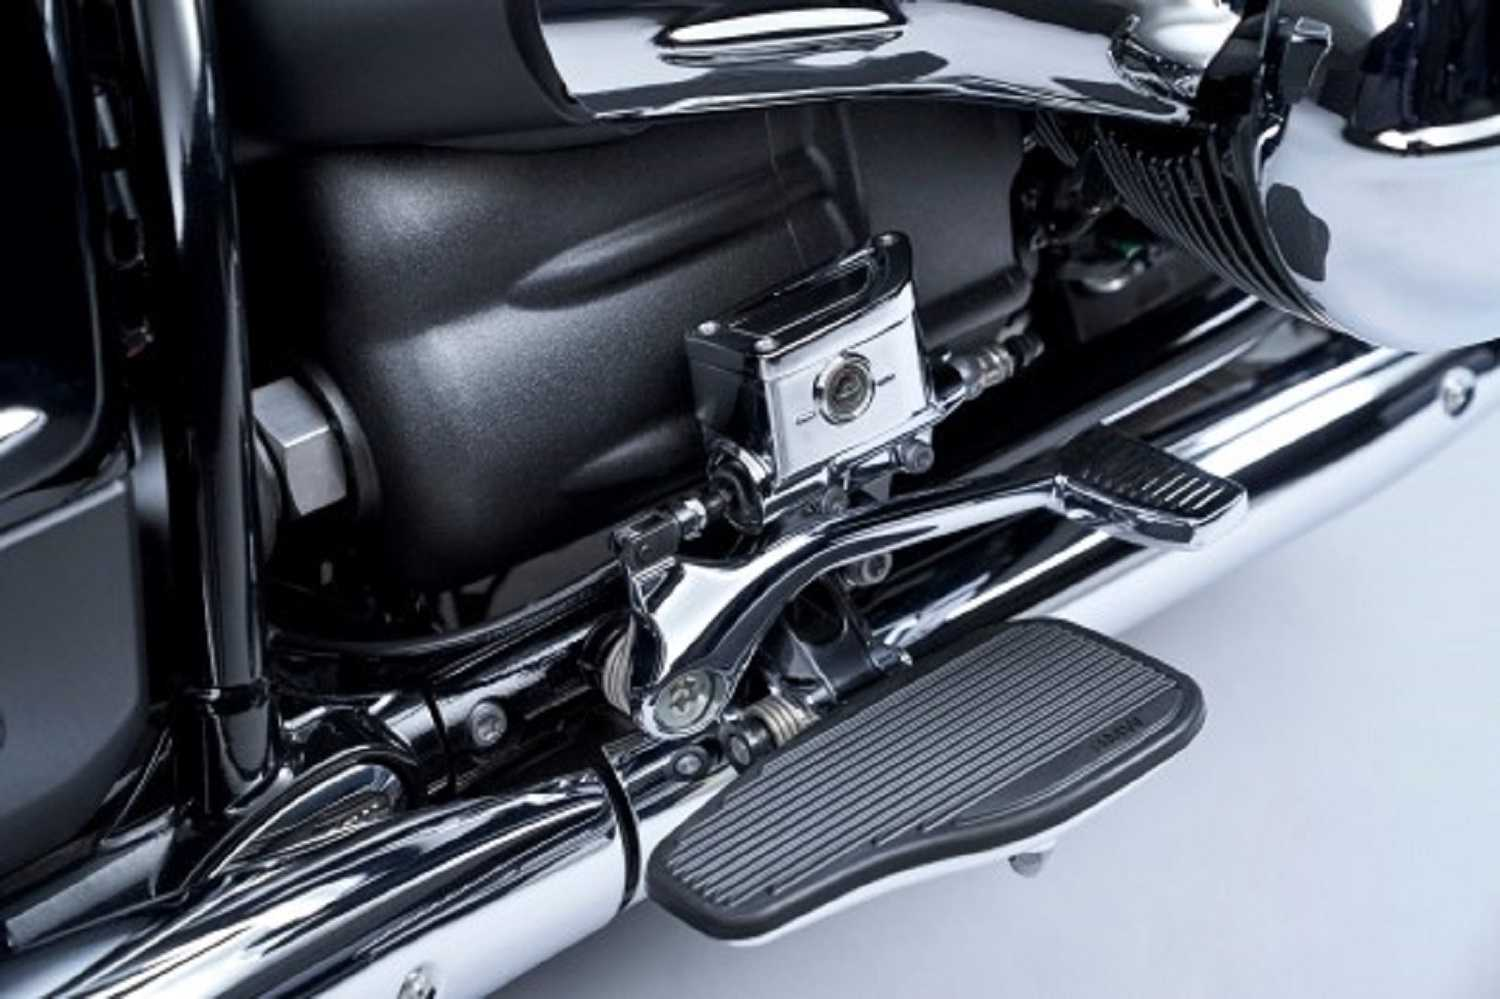 The new 2022 BMW R 18 B and R 18 Transcontinental